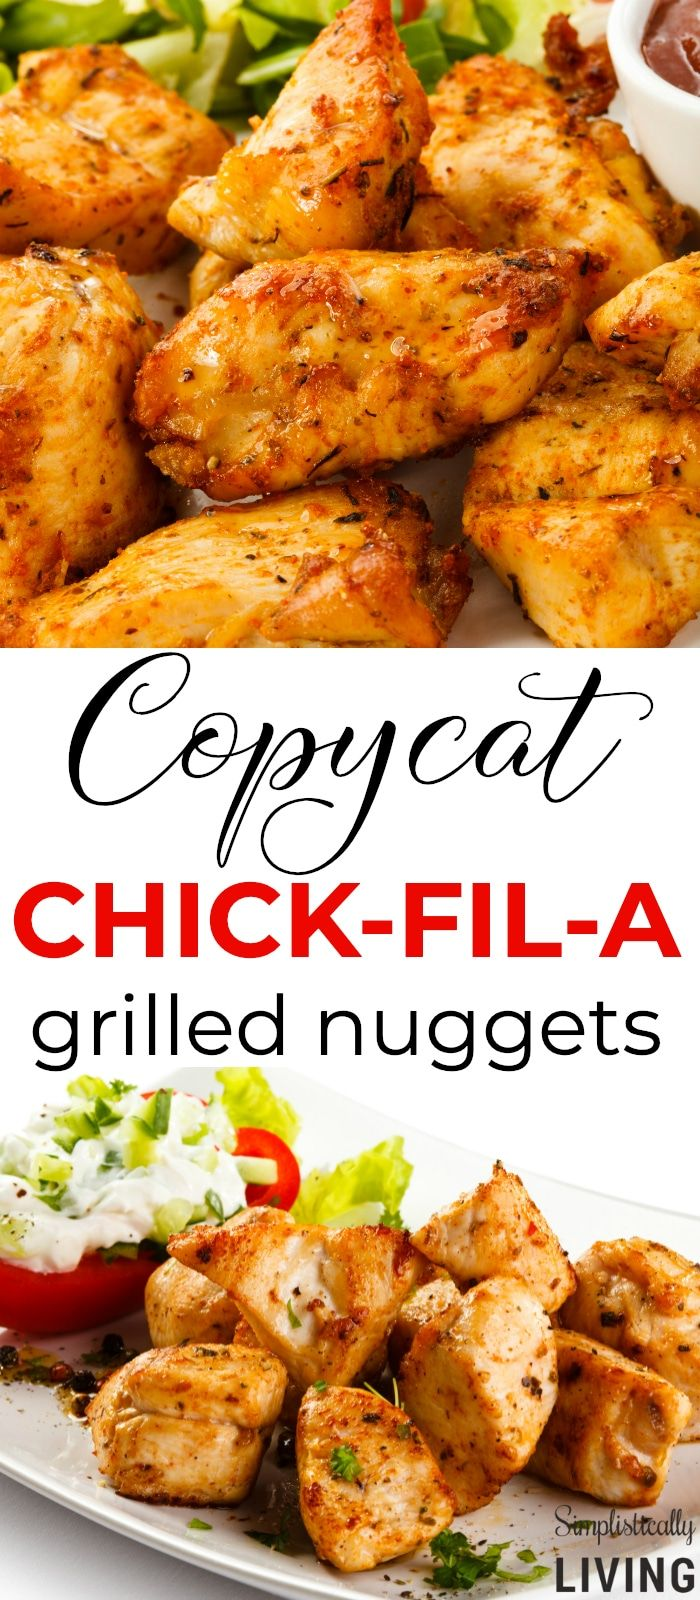 Copycat Chick-Fil-A Grilled Nuggets